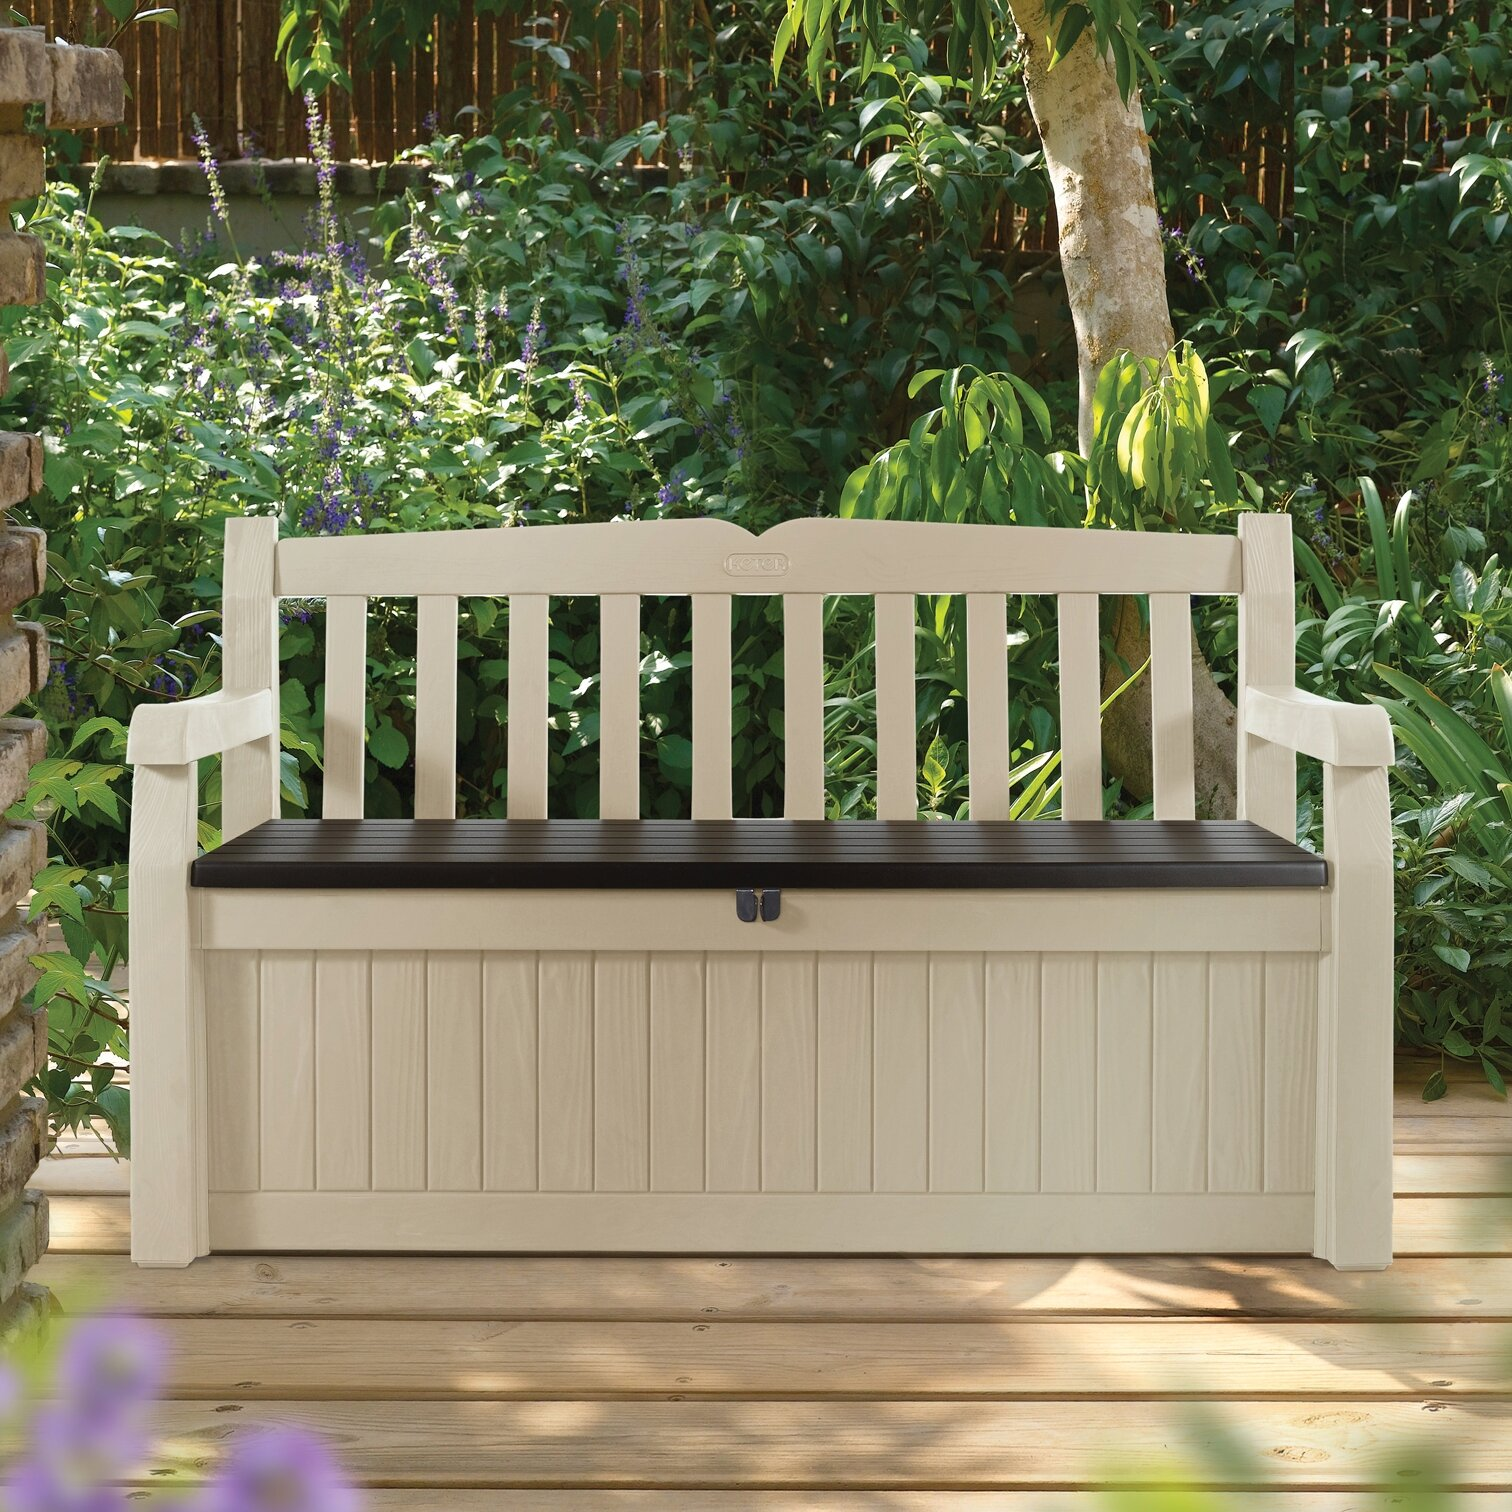 Building Patio Bench With Storage: Keter All Weather 70 Gallon Resin Storage Bench & Reviews